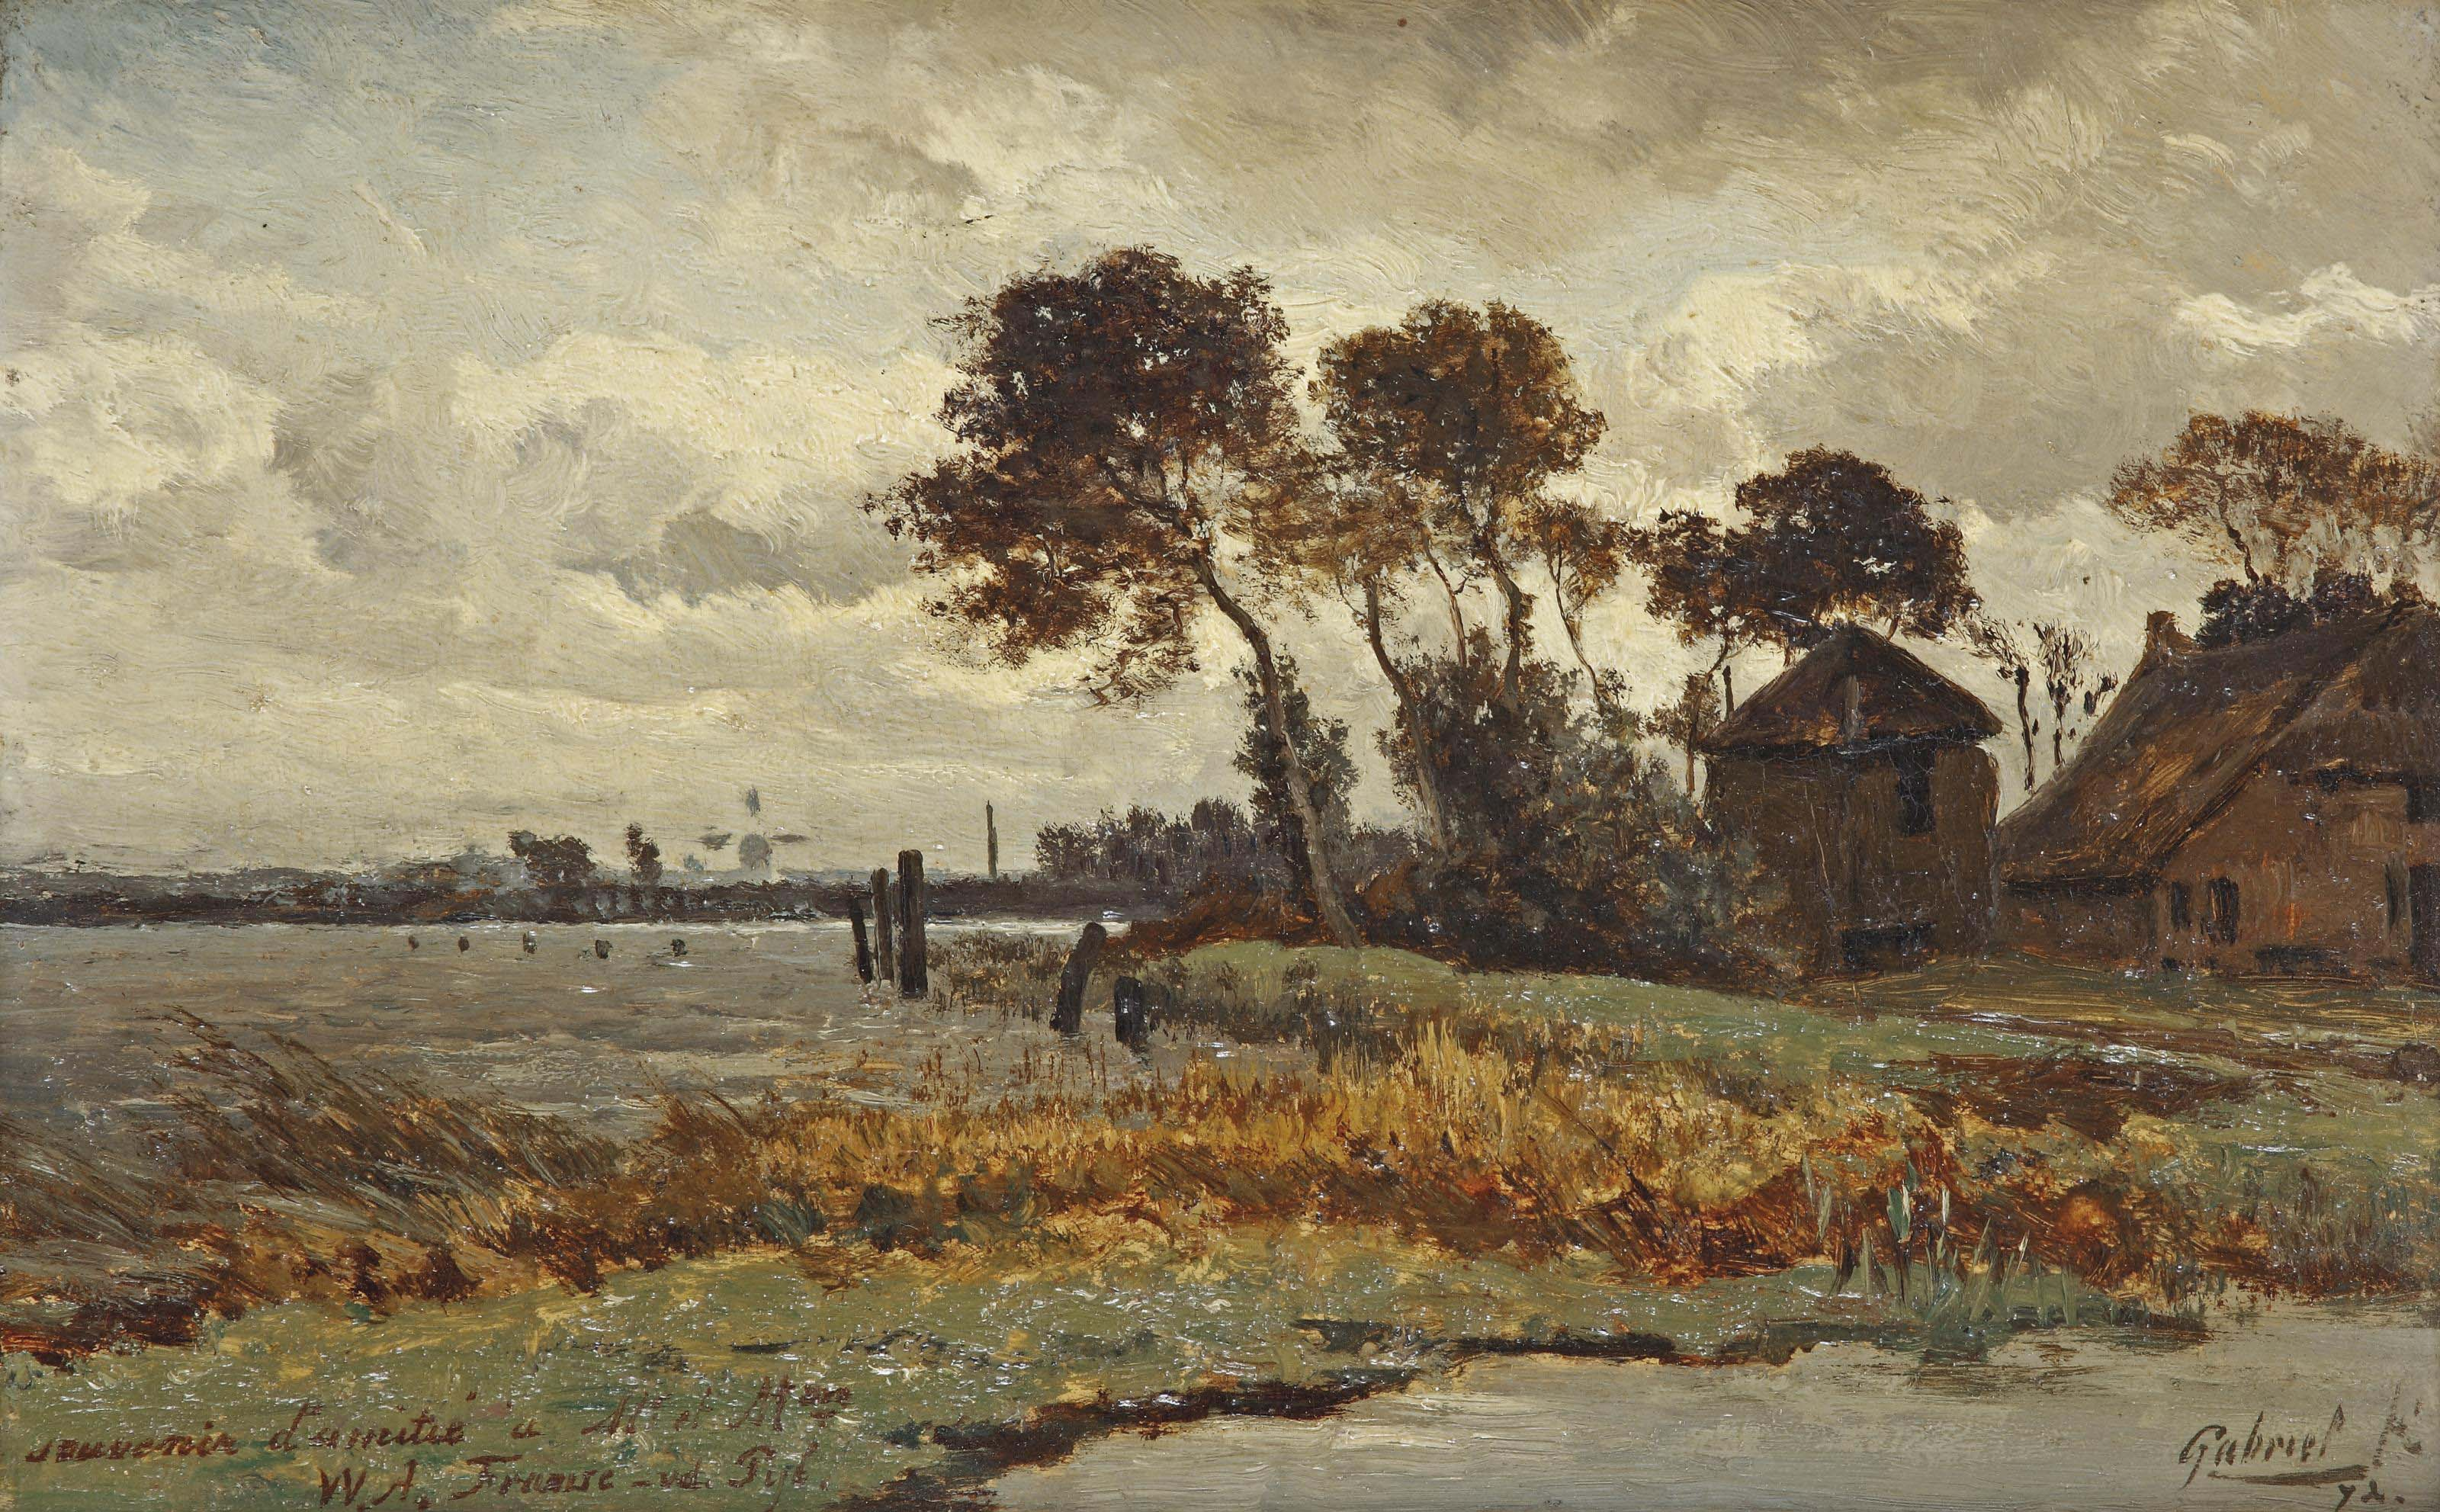 A farm along a waterway in autumn